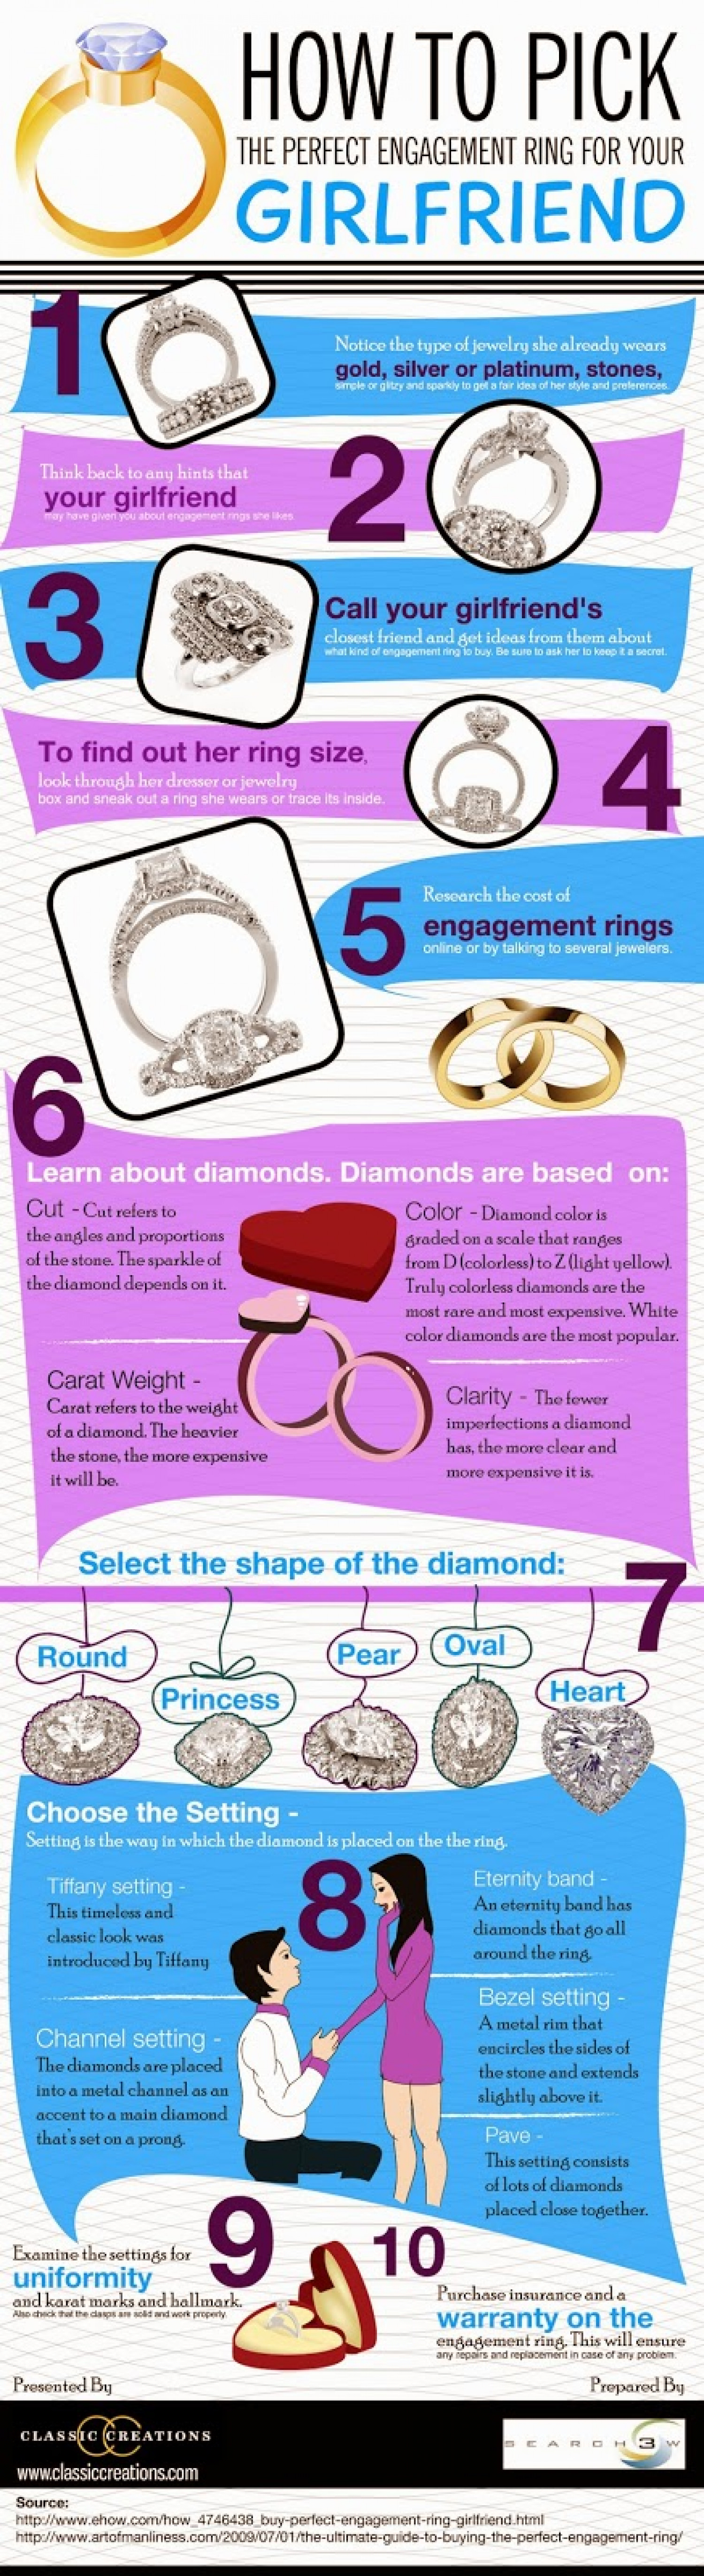 How To Pick The Perfect Engagement Ring For Your Girlfriend Infographic